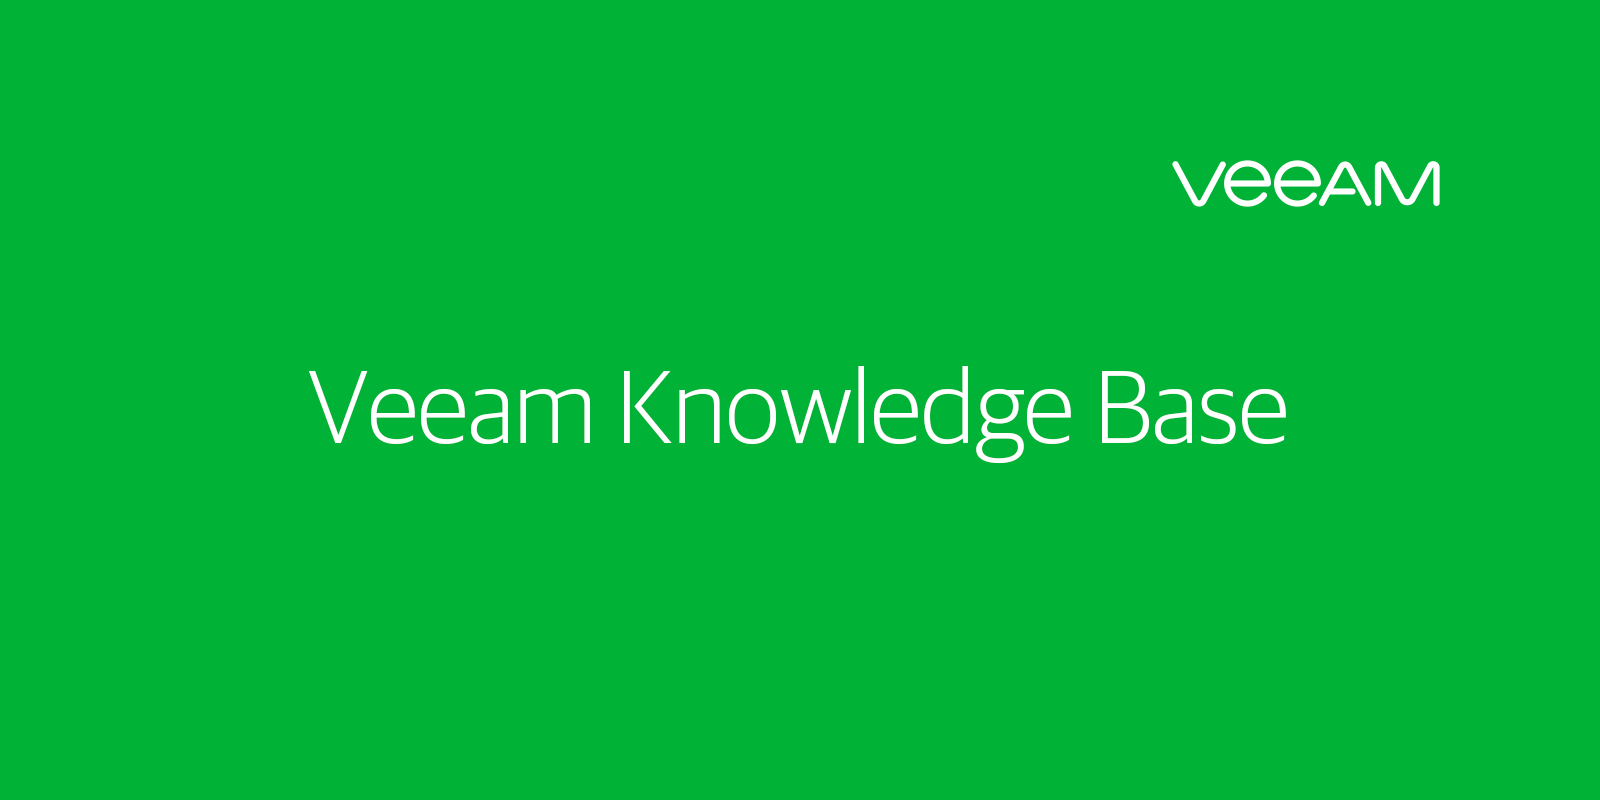 KB1154: How to configure Veeam for rotated media